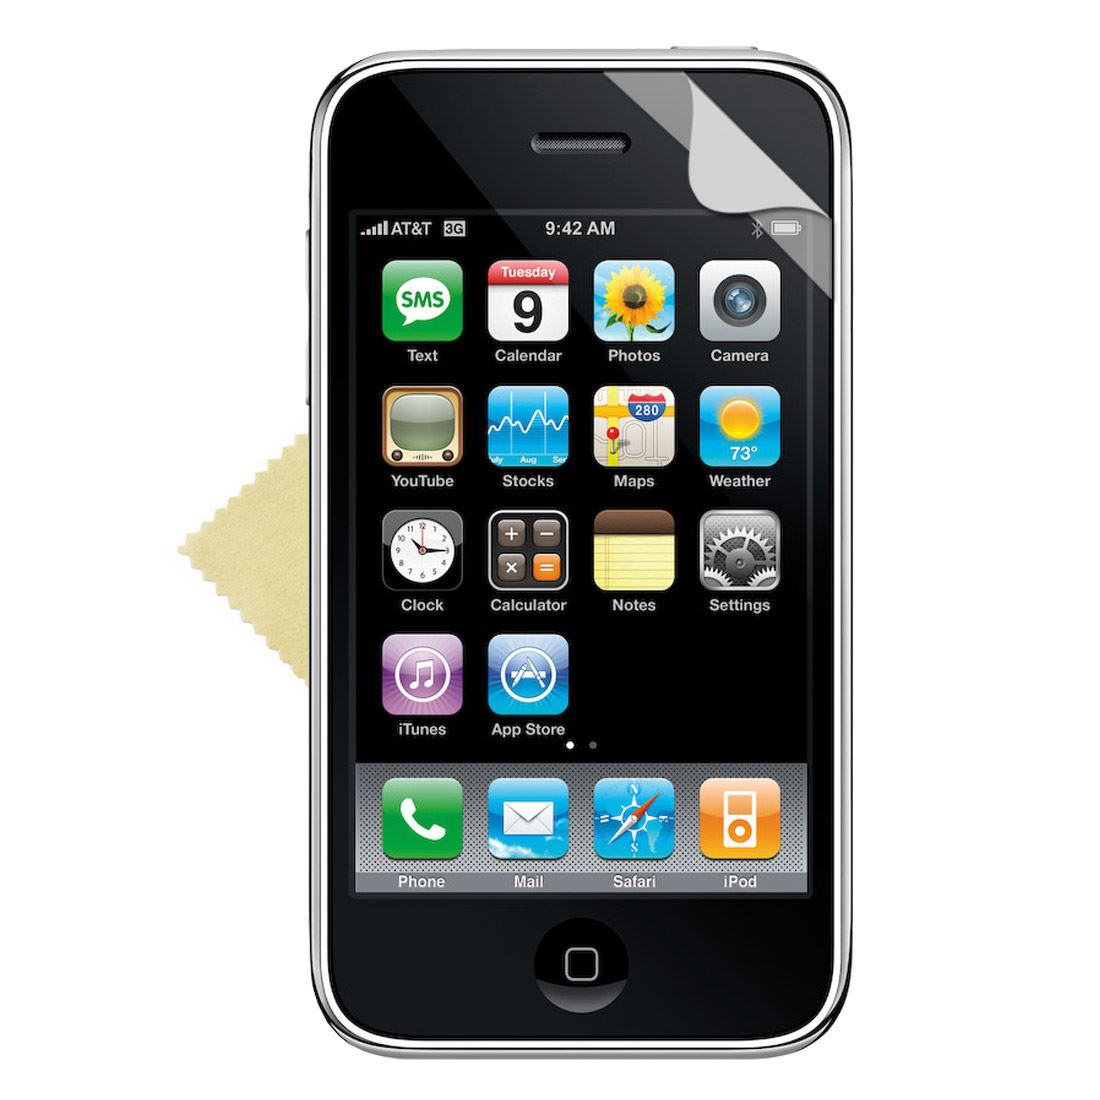 3x-CLEAR-SCREEN-PROTECTOR-FOR-APPLE-iPhone3G-3GS